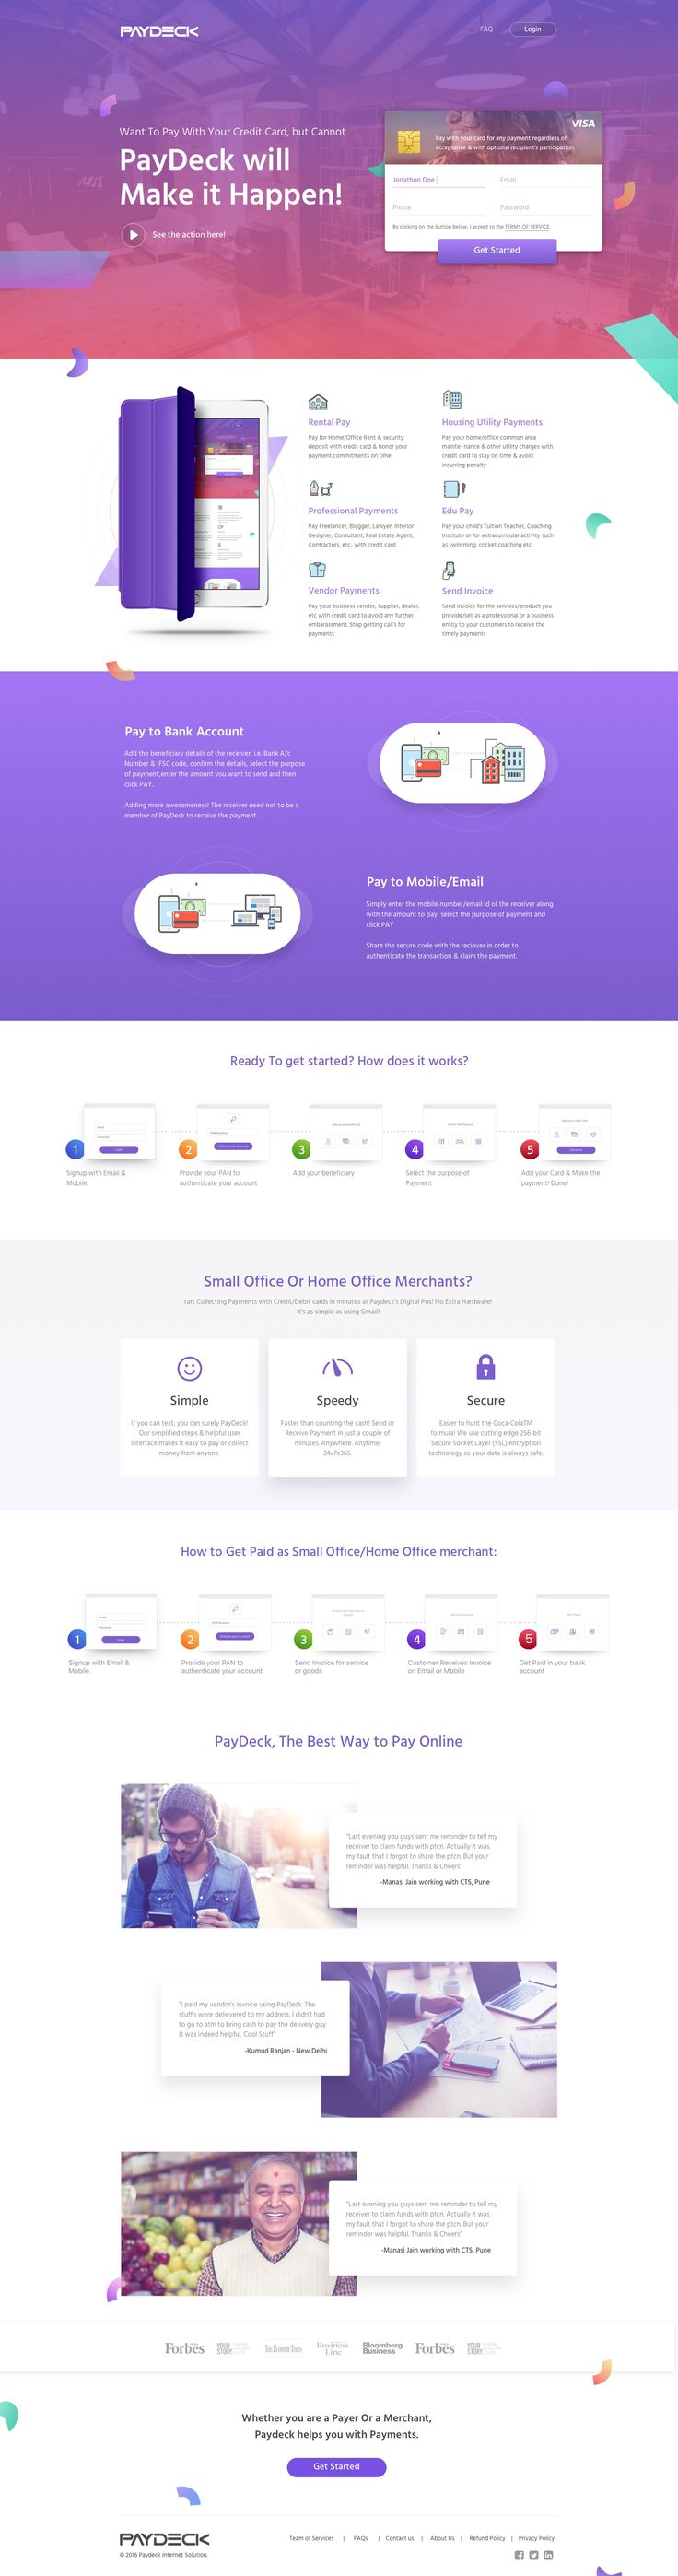 Landing page v 5.1 - - - re-pinned by templatemo